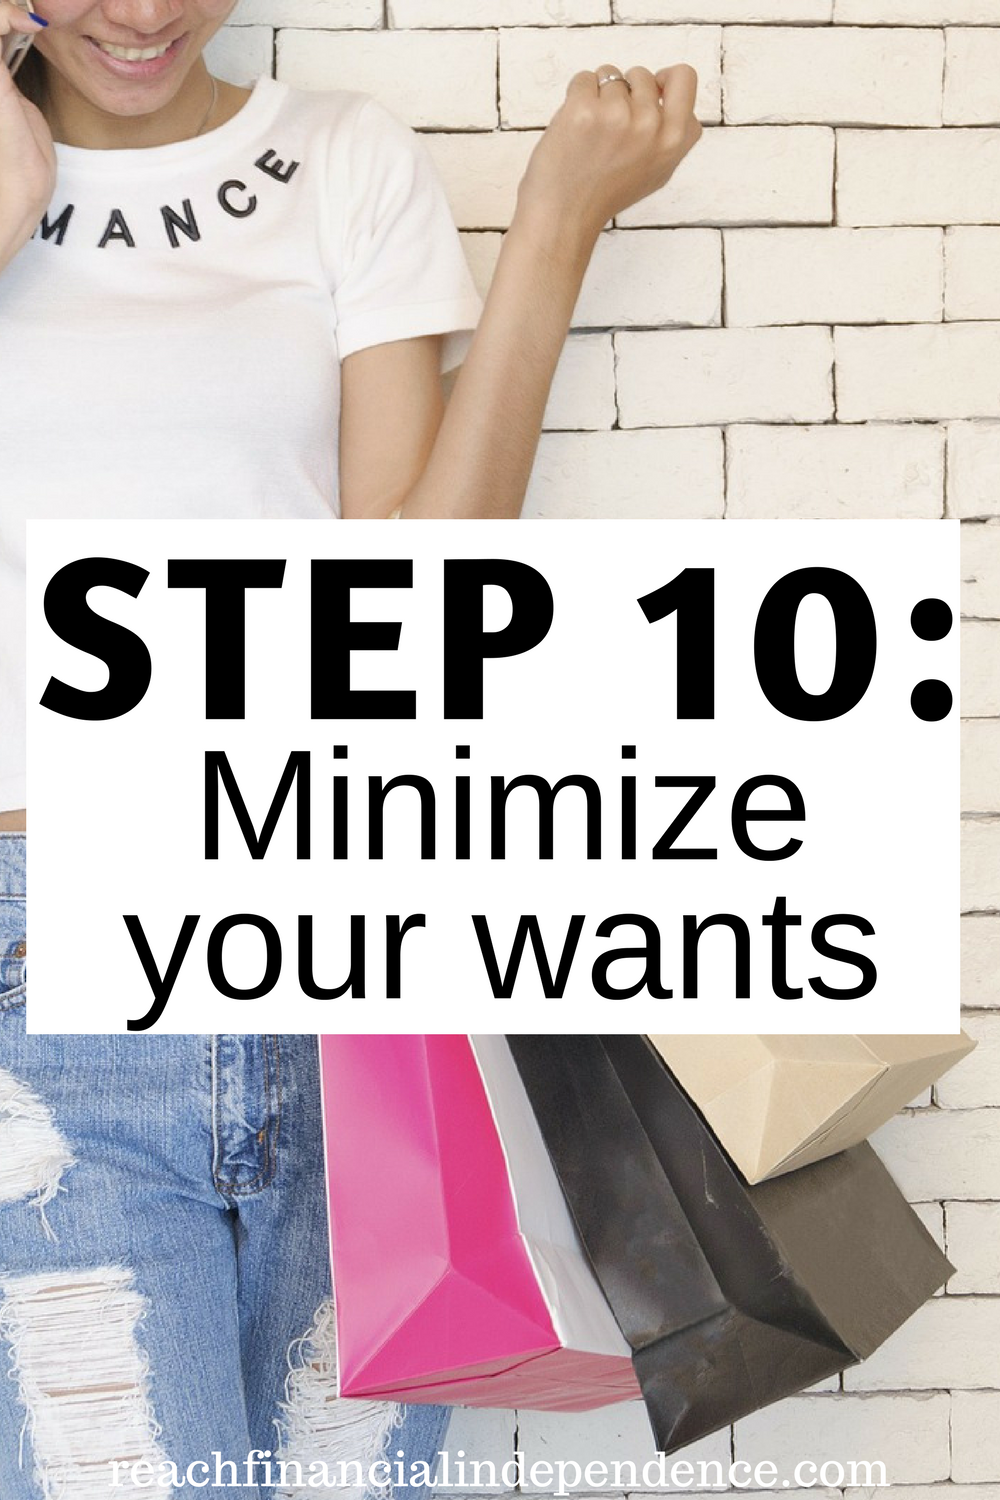 Step 10: Minimize your wants. This post is part of a 30 days series called the 30 steps program to financial independence.